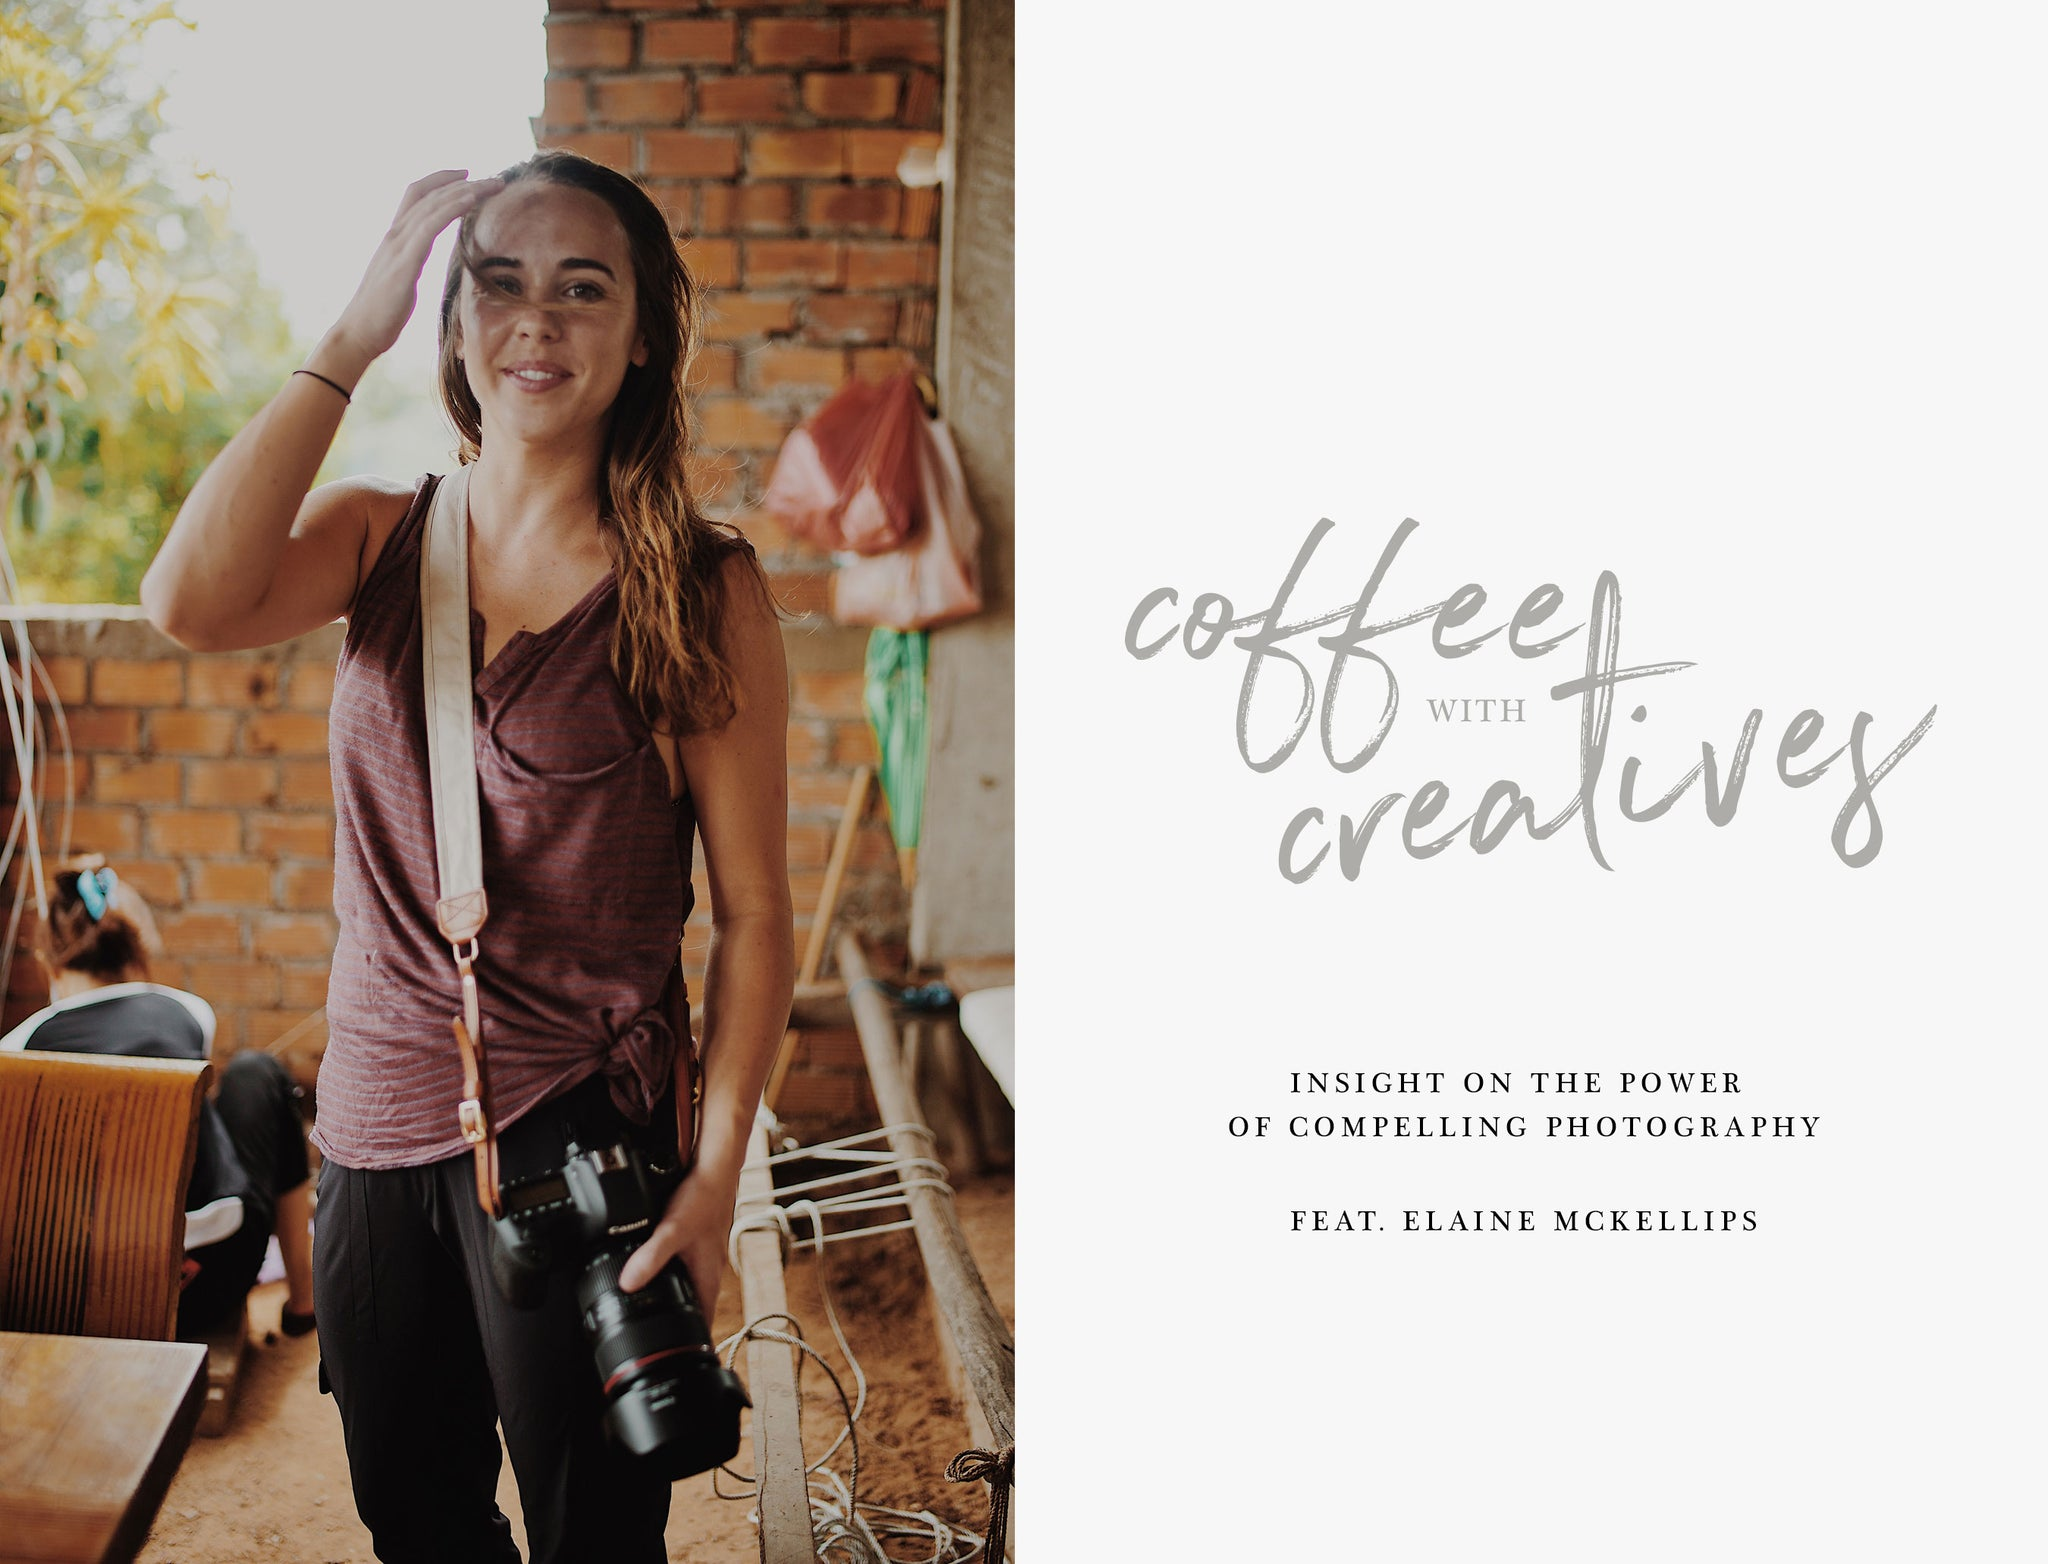 Coffee with Creatives: Insight on the power of compelling photography